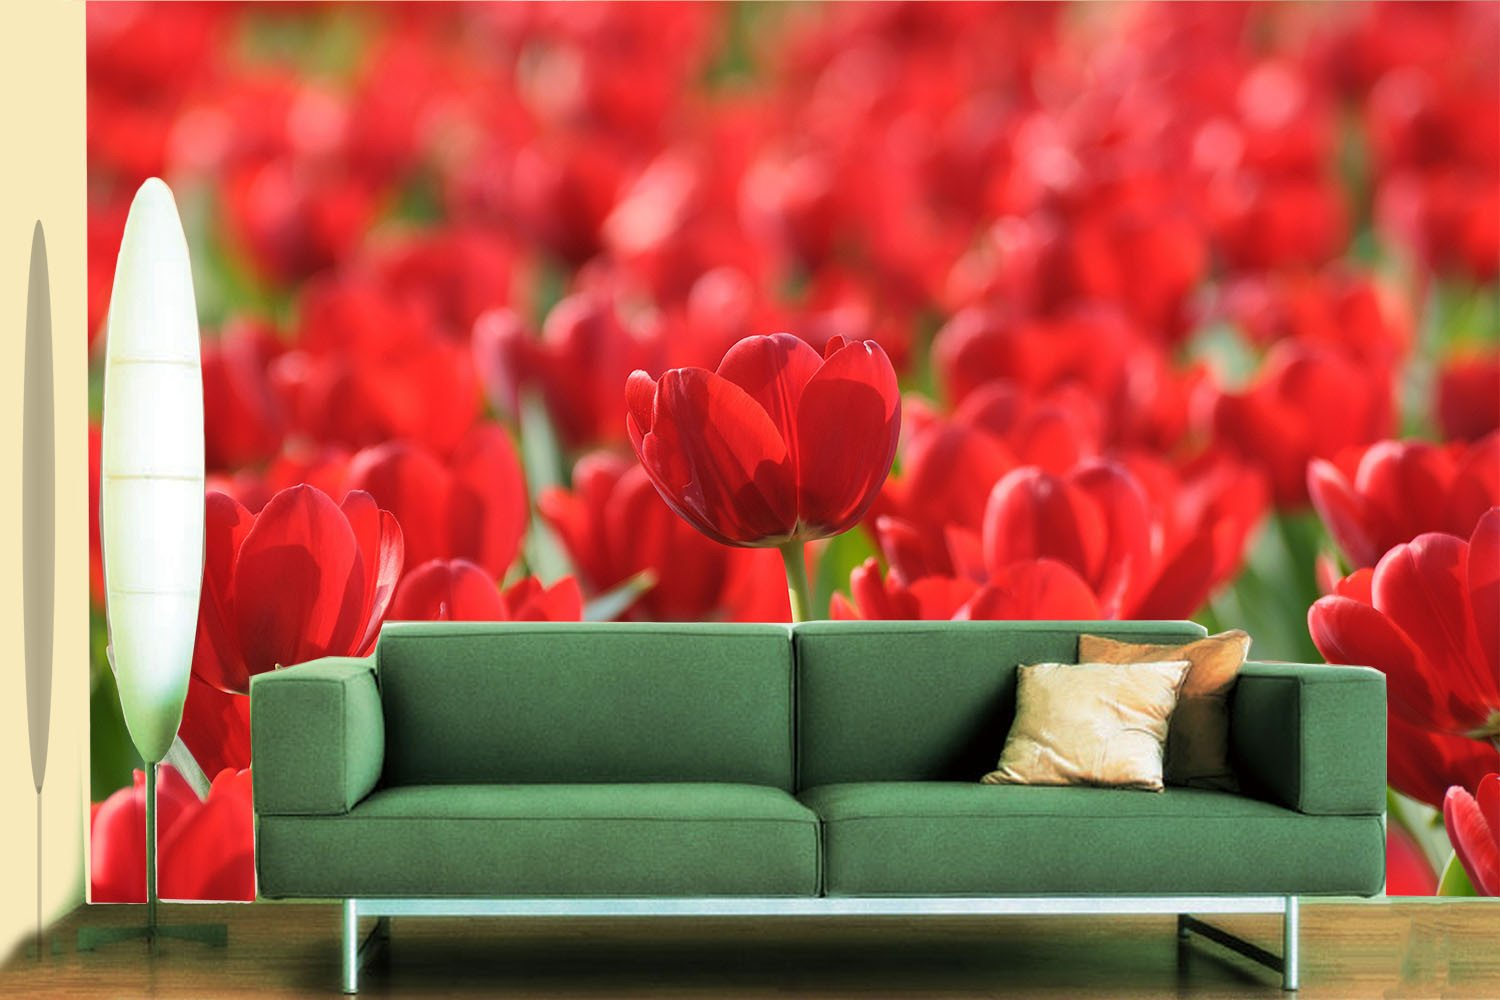 Red Tulips Wallpaper AJ Wallpaper